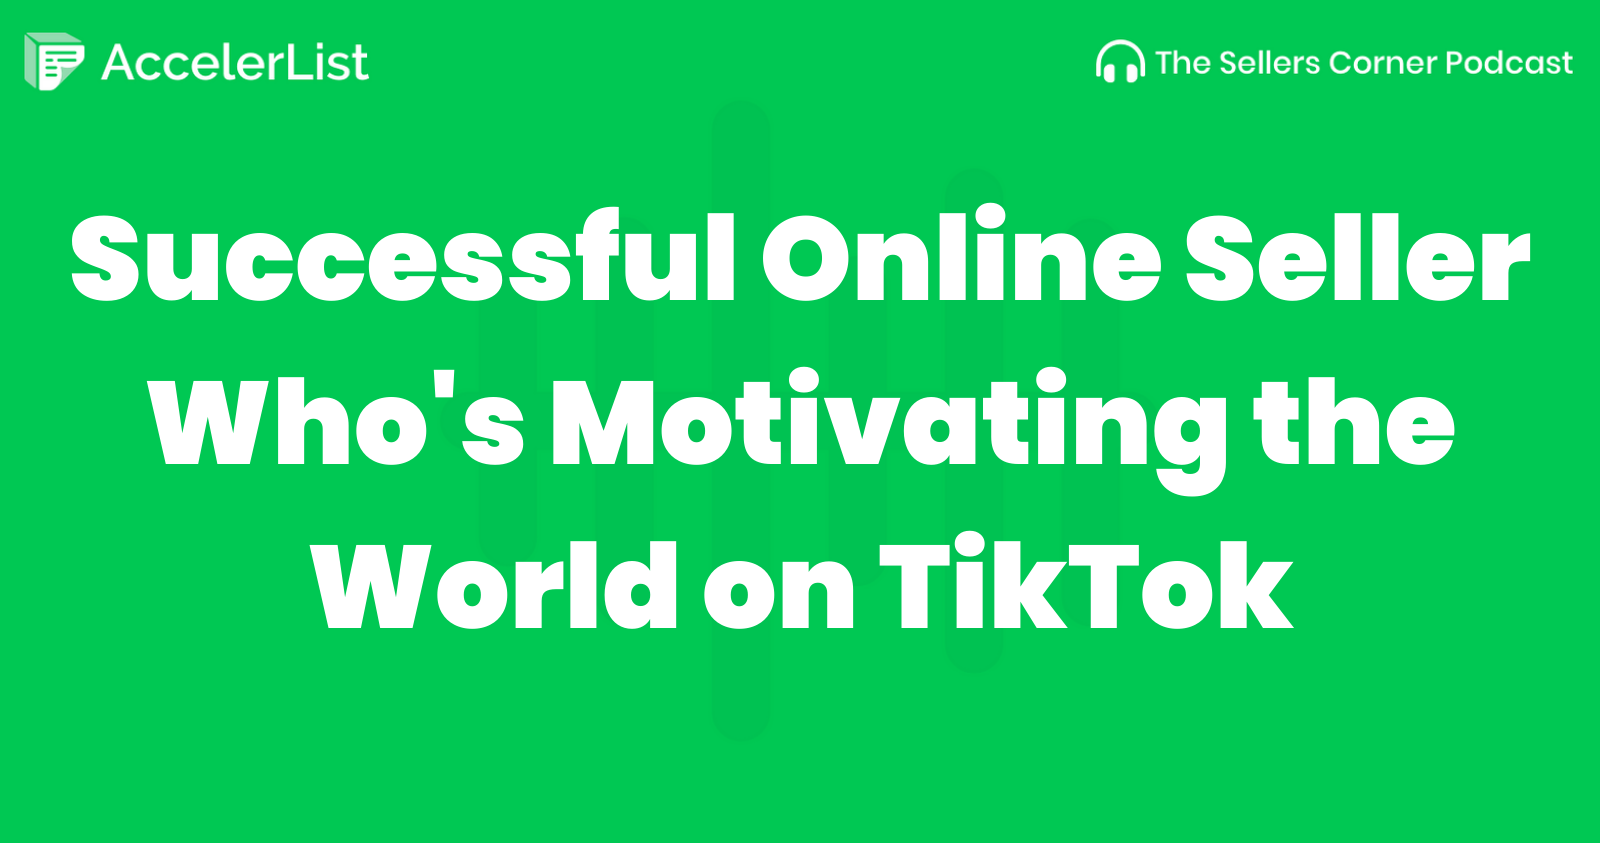 Successful Online Seller Who's Motivating the World on TikTok